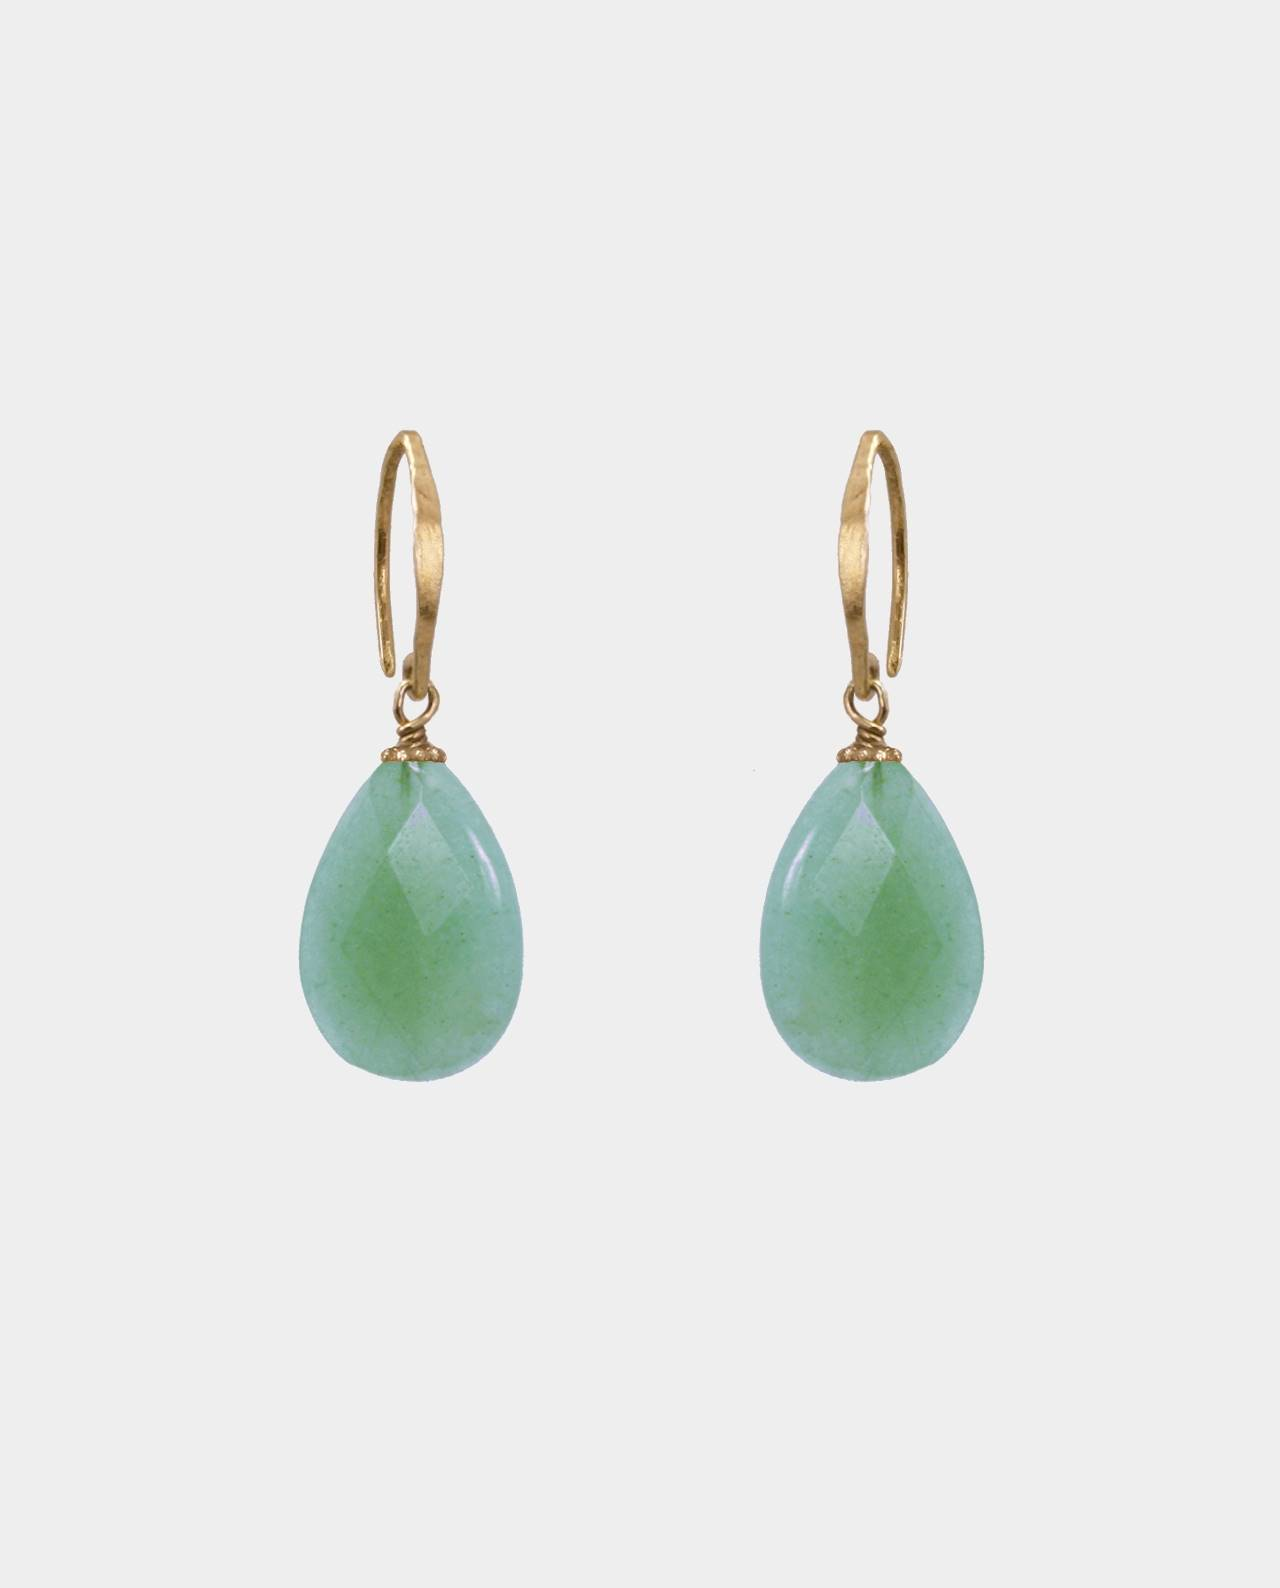 Handmade droplet-shaped earrings with bevelled aventurines and hammered ear hooks in sterling silver plated with 18 carat gold